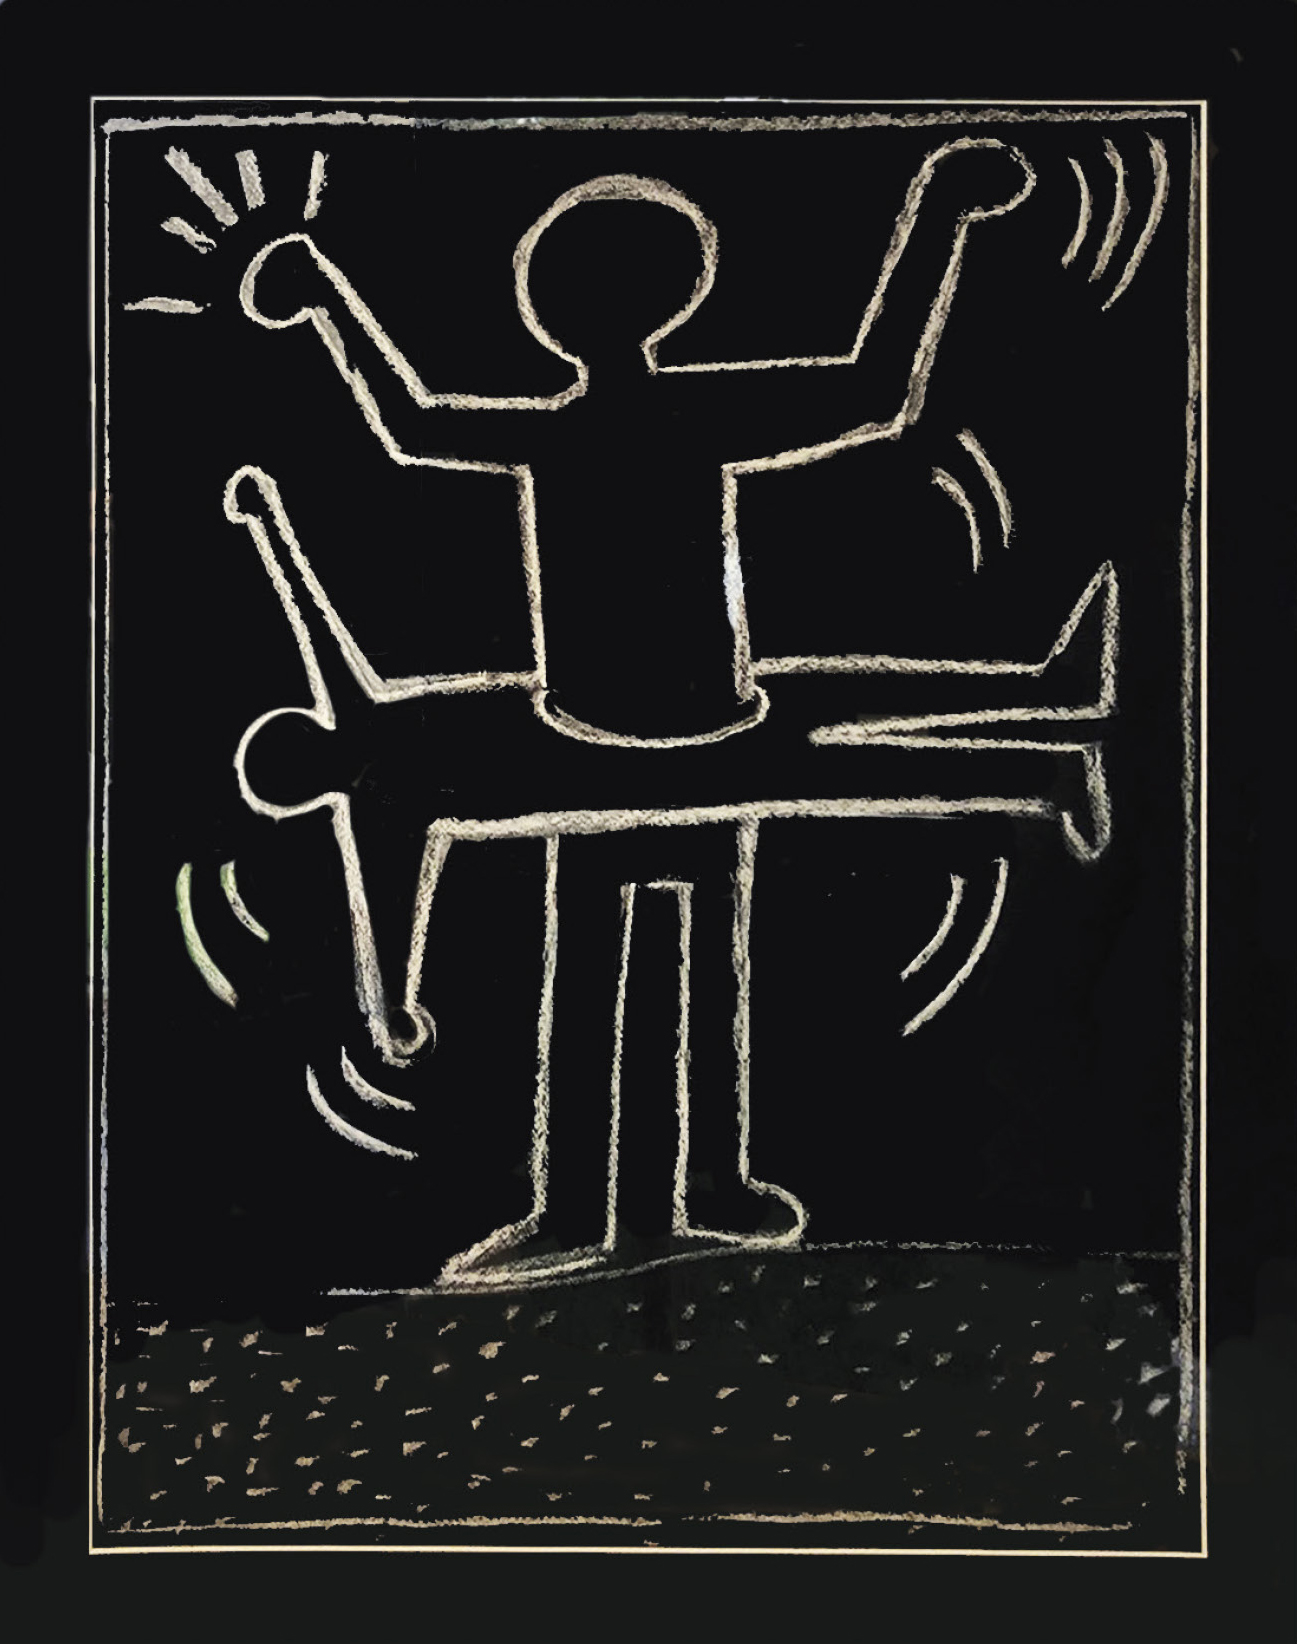 Lot 15 - Haring Keith (1958-1990) Travail dans le métro à New York, 1987 - Mixed media on [...]